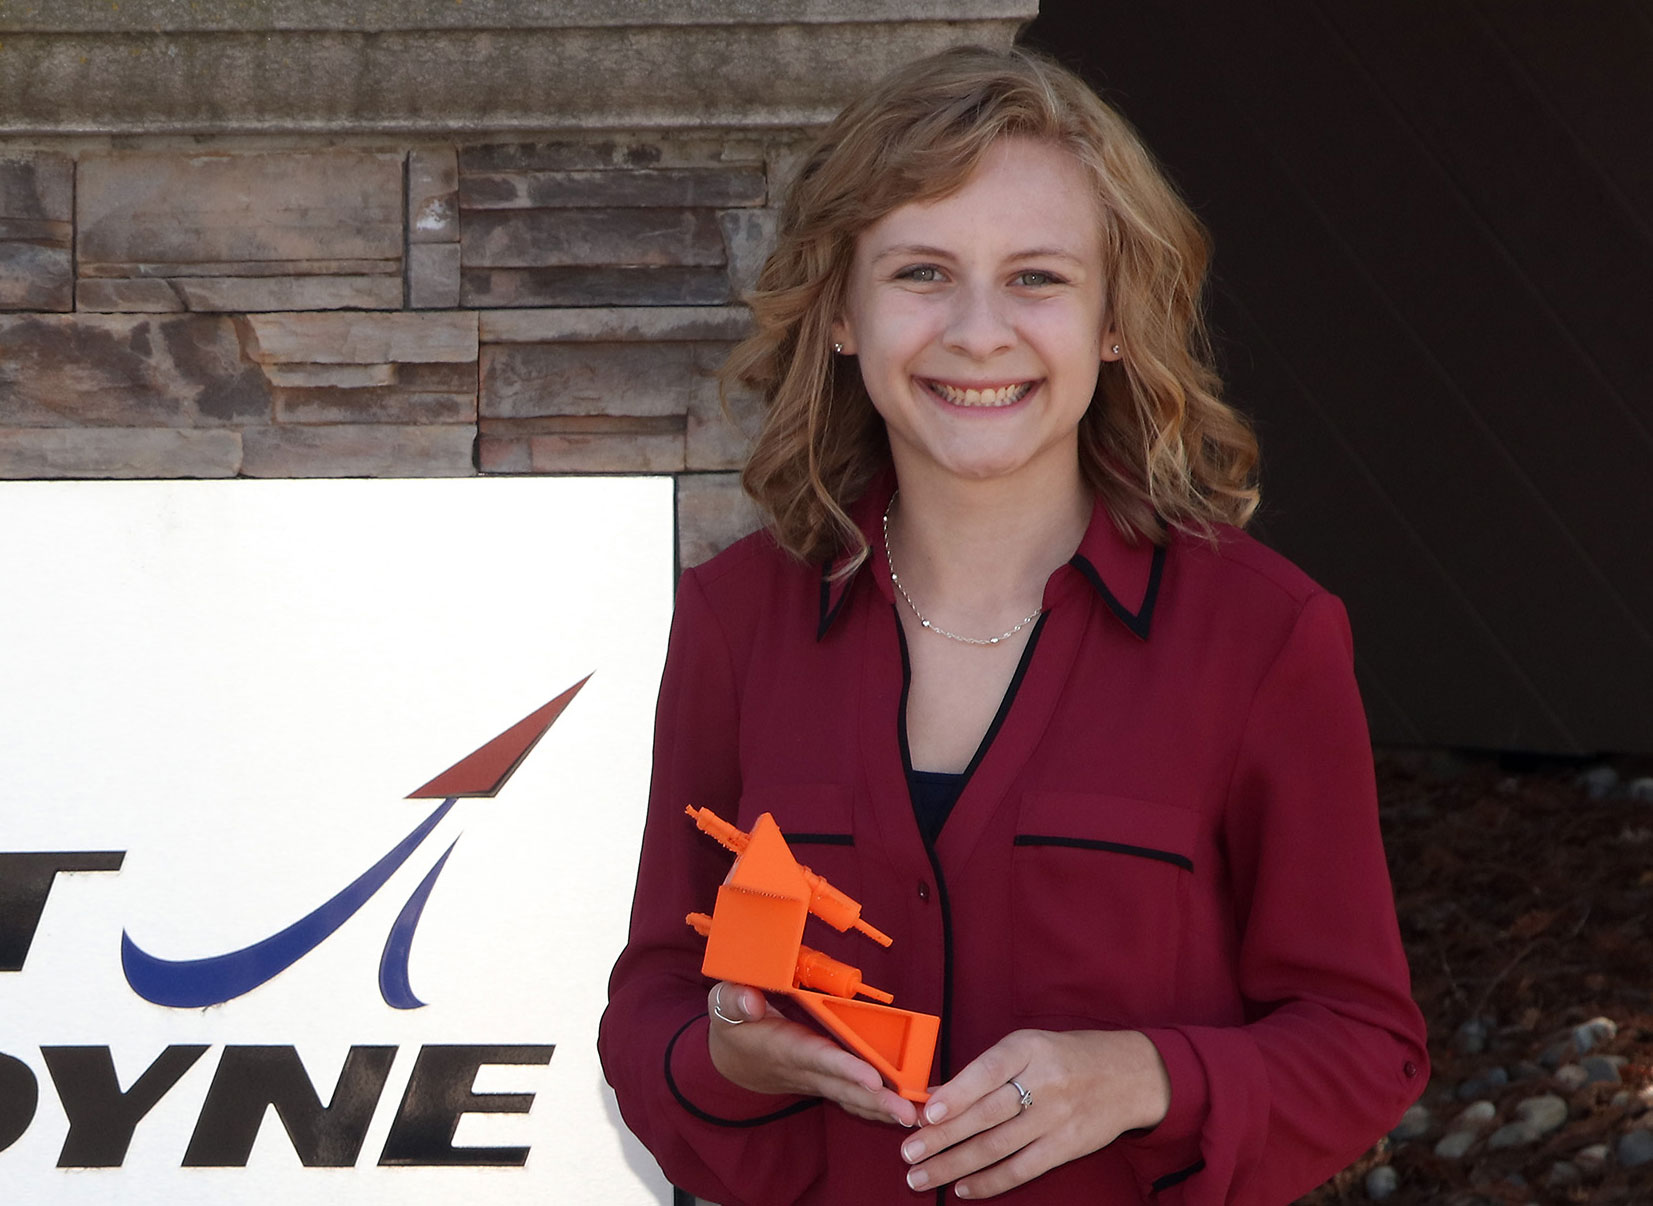 A photo of Sac State student Elizabeth Gabler holding a model of the bracket she designed for Aerojet Rockeydyne